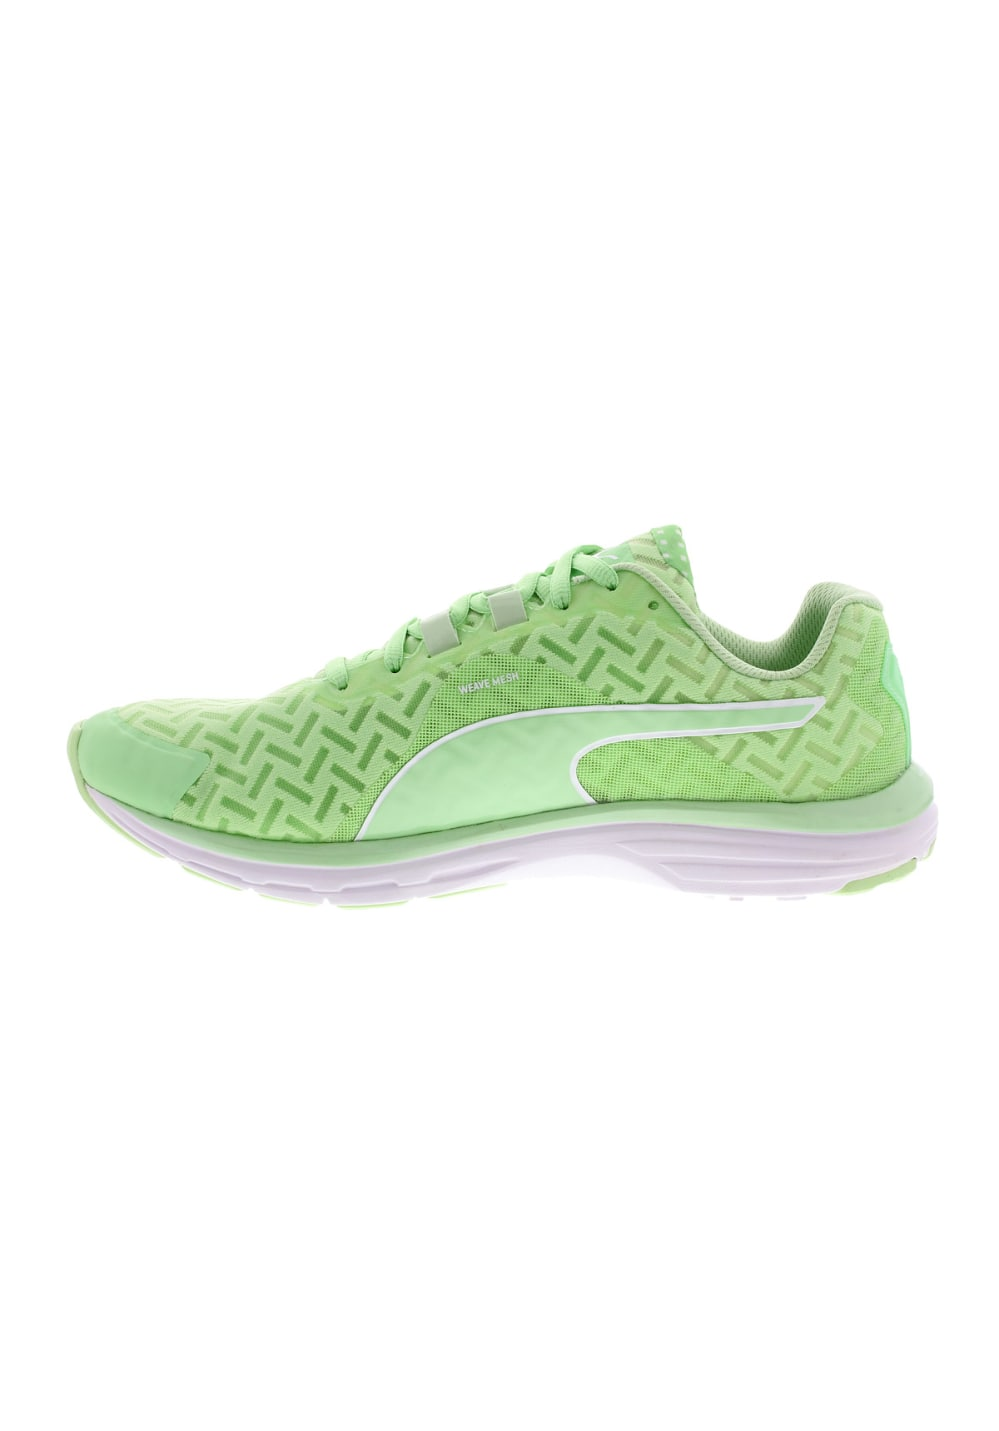 Previous. Next. -60%. Puma. Faas 500 v4 PWRCOOL - Running shoes for Women bedca5ac21